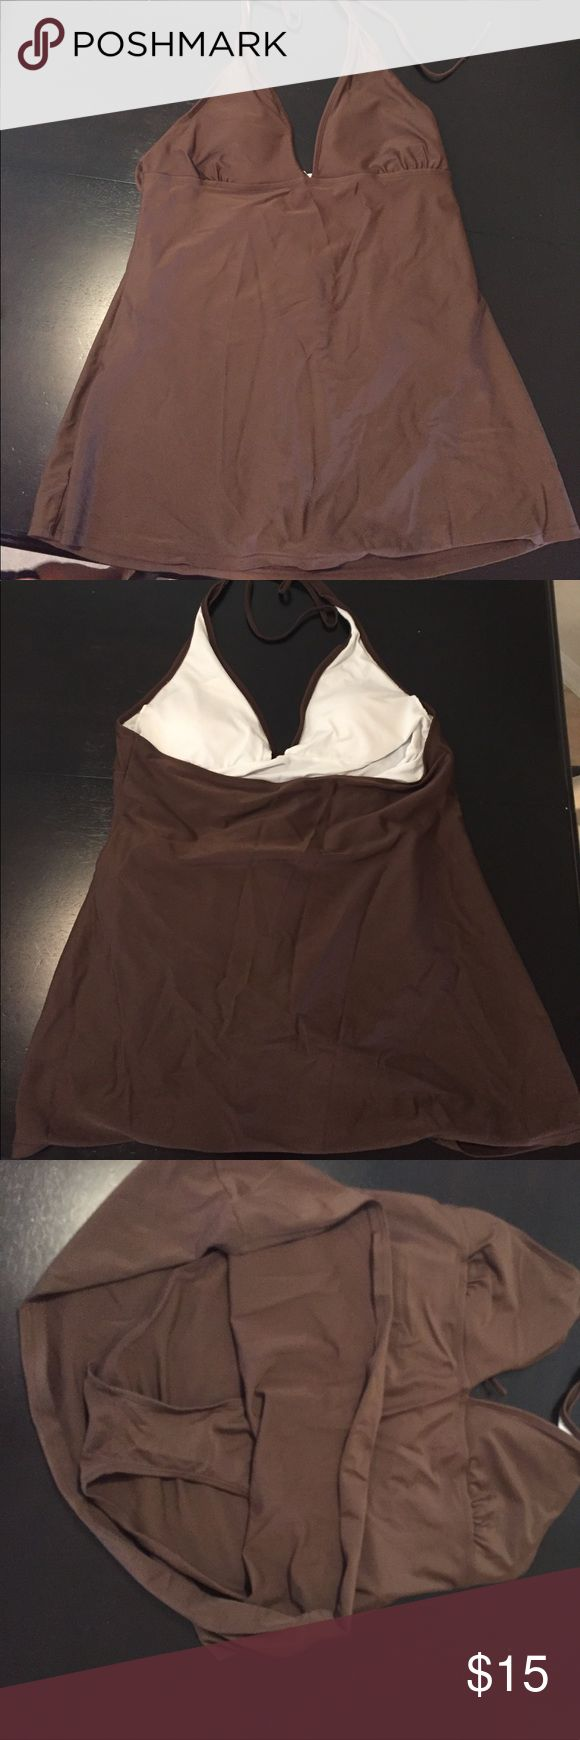 XL Maternity One Piece Bathing Suit Brown V-neck top with a skirt covering the bottom portion. Swim One Pieces